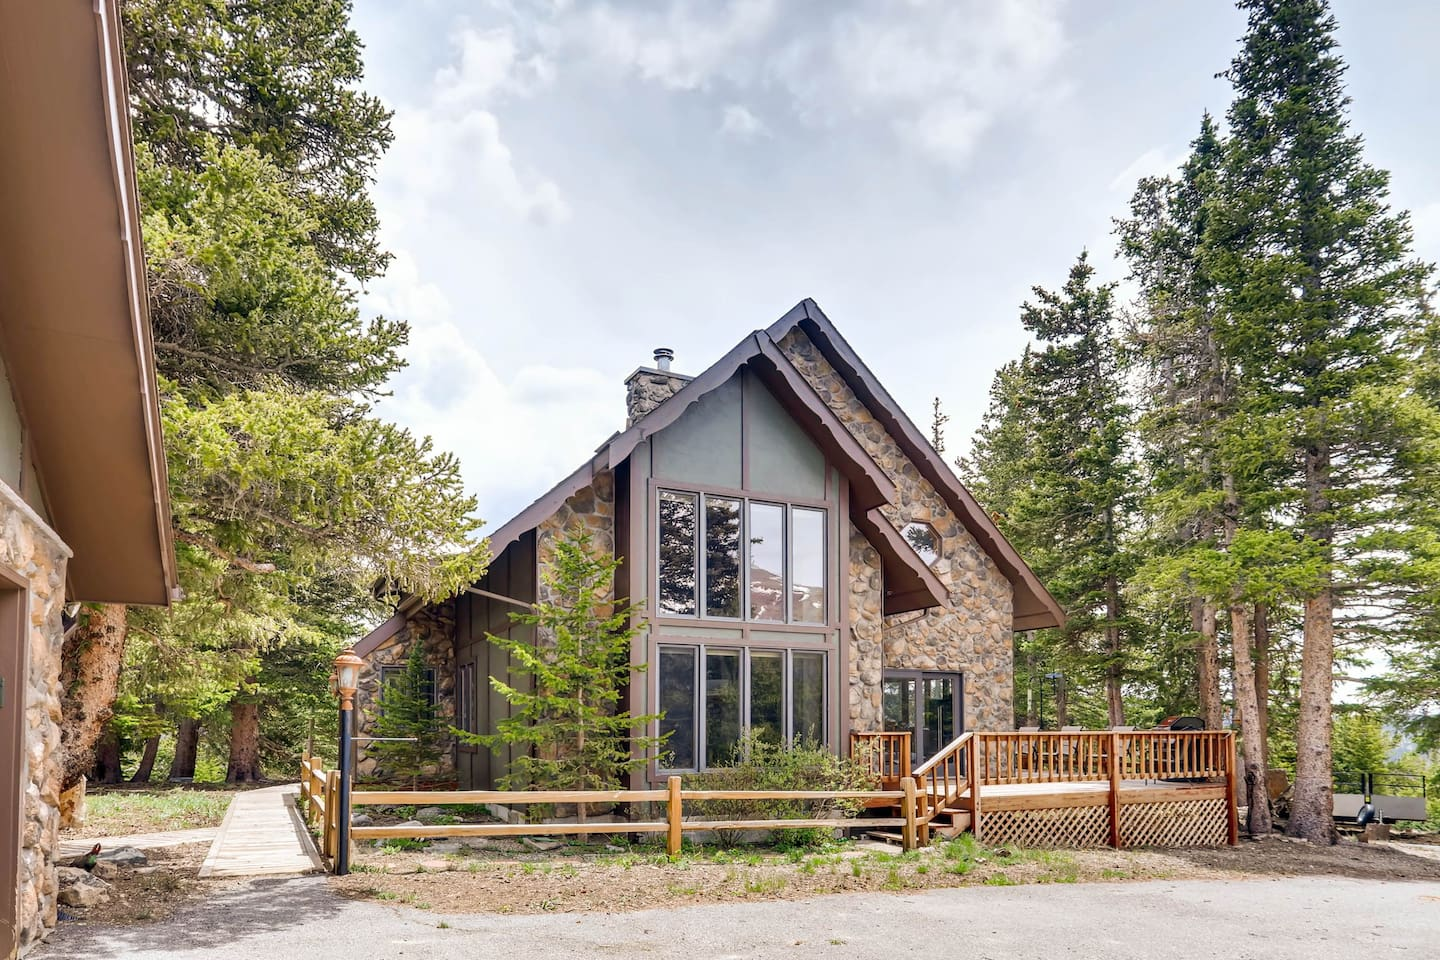 Mountain Aire' Getaway is a luxurious custom vacation home located just 20 miles from Breckenridge